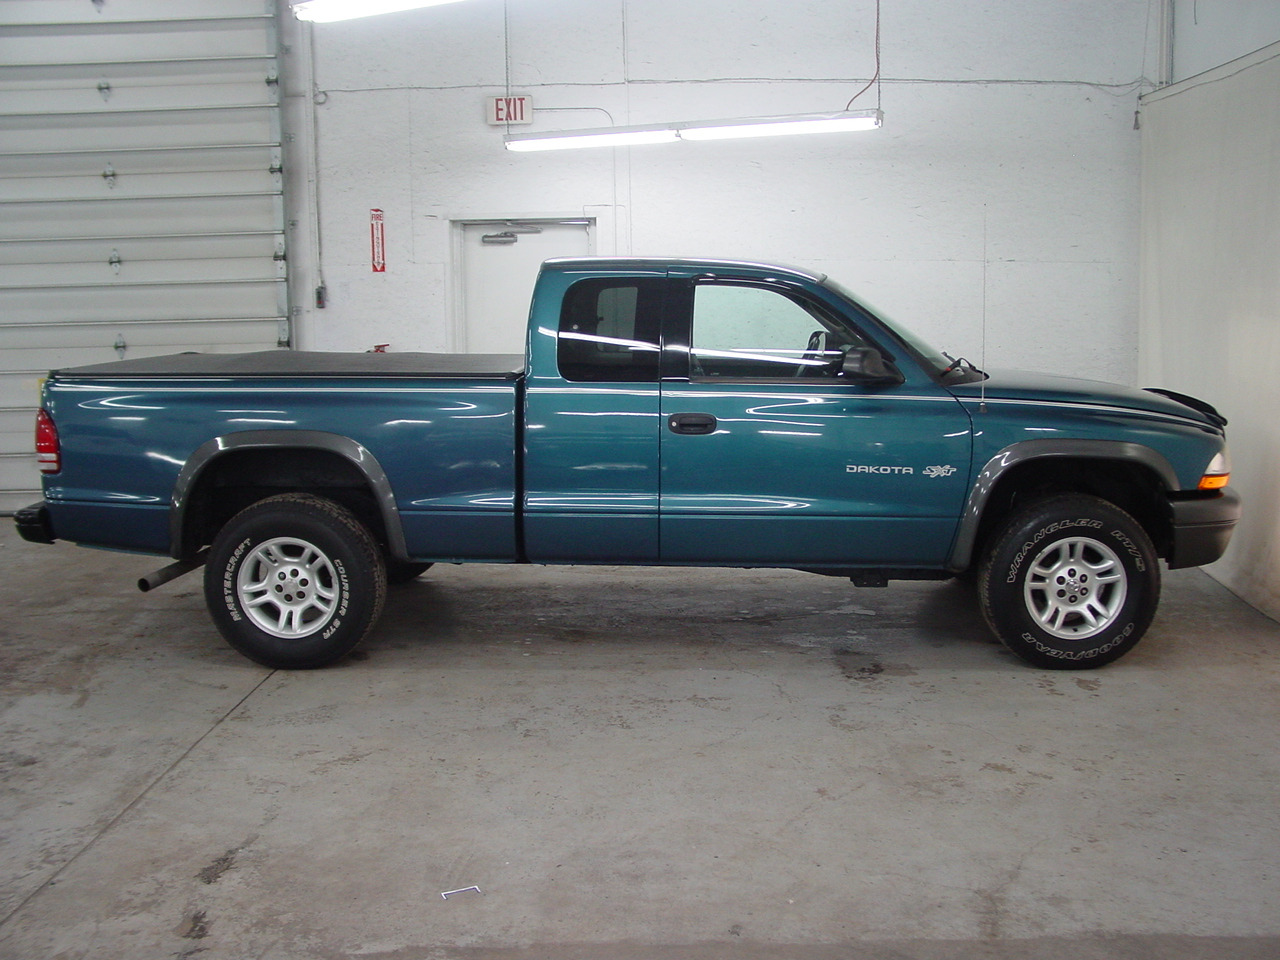 2002 dodge dakota sxt biscayne auto sales pre owned. Black Bedroom Furniture Sets. Home Design Ideas